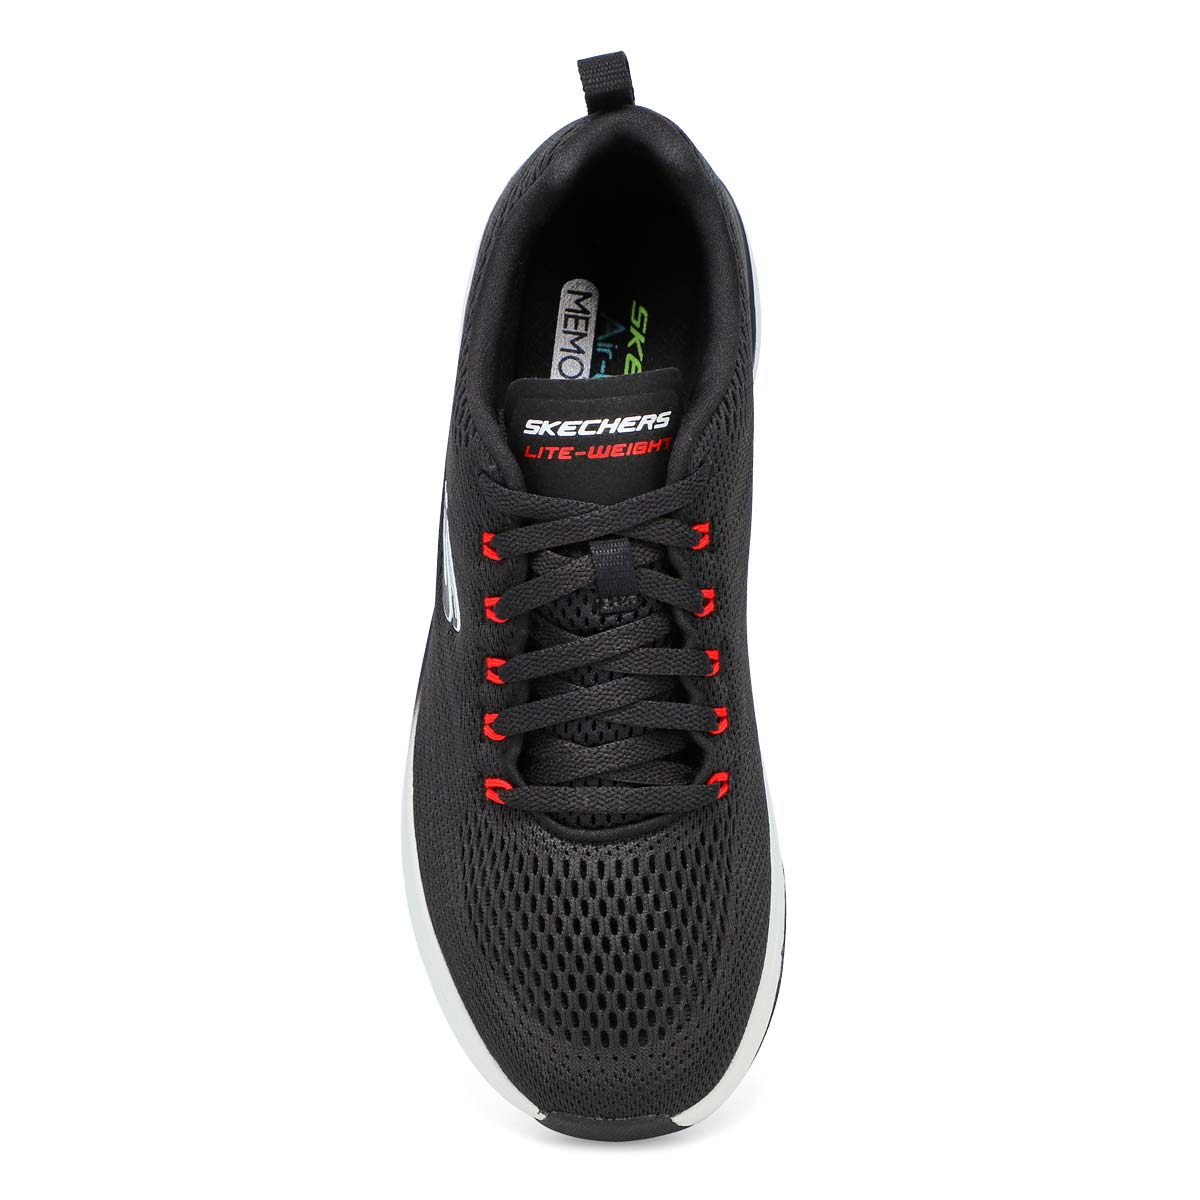 Men's Ultra Groove Templar Sneaker - Black